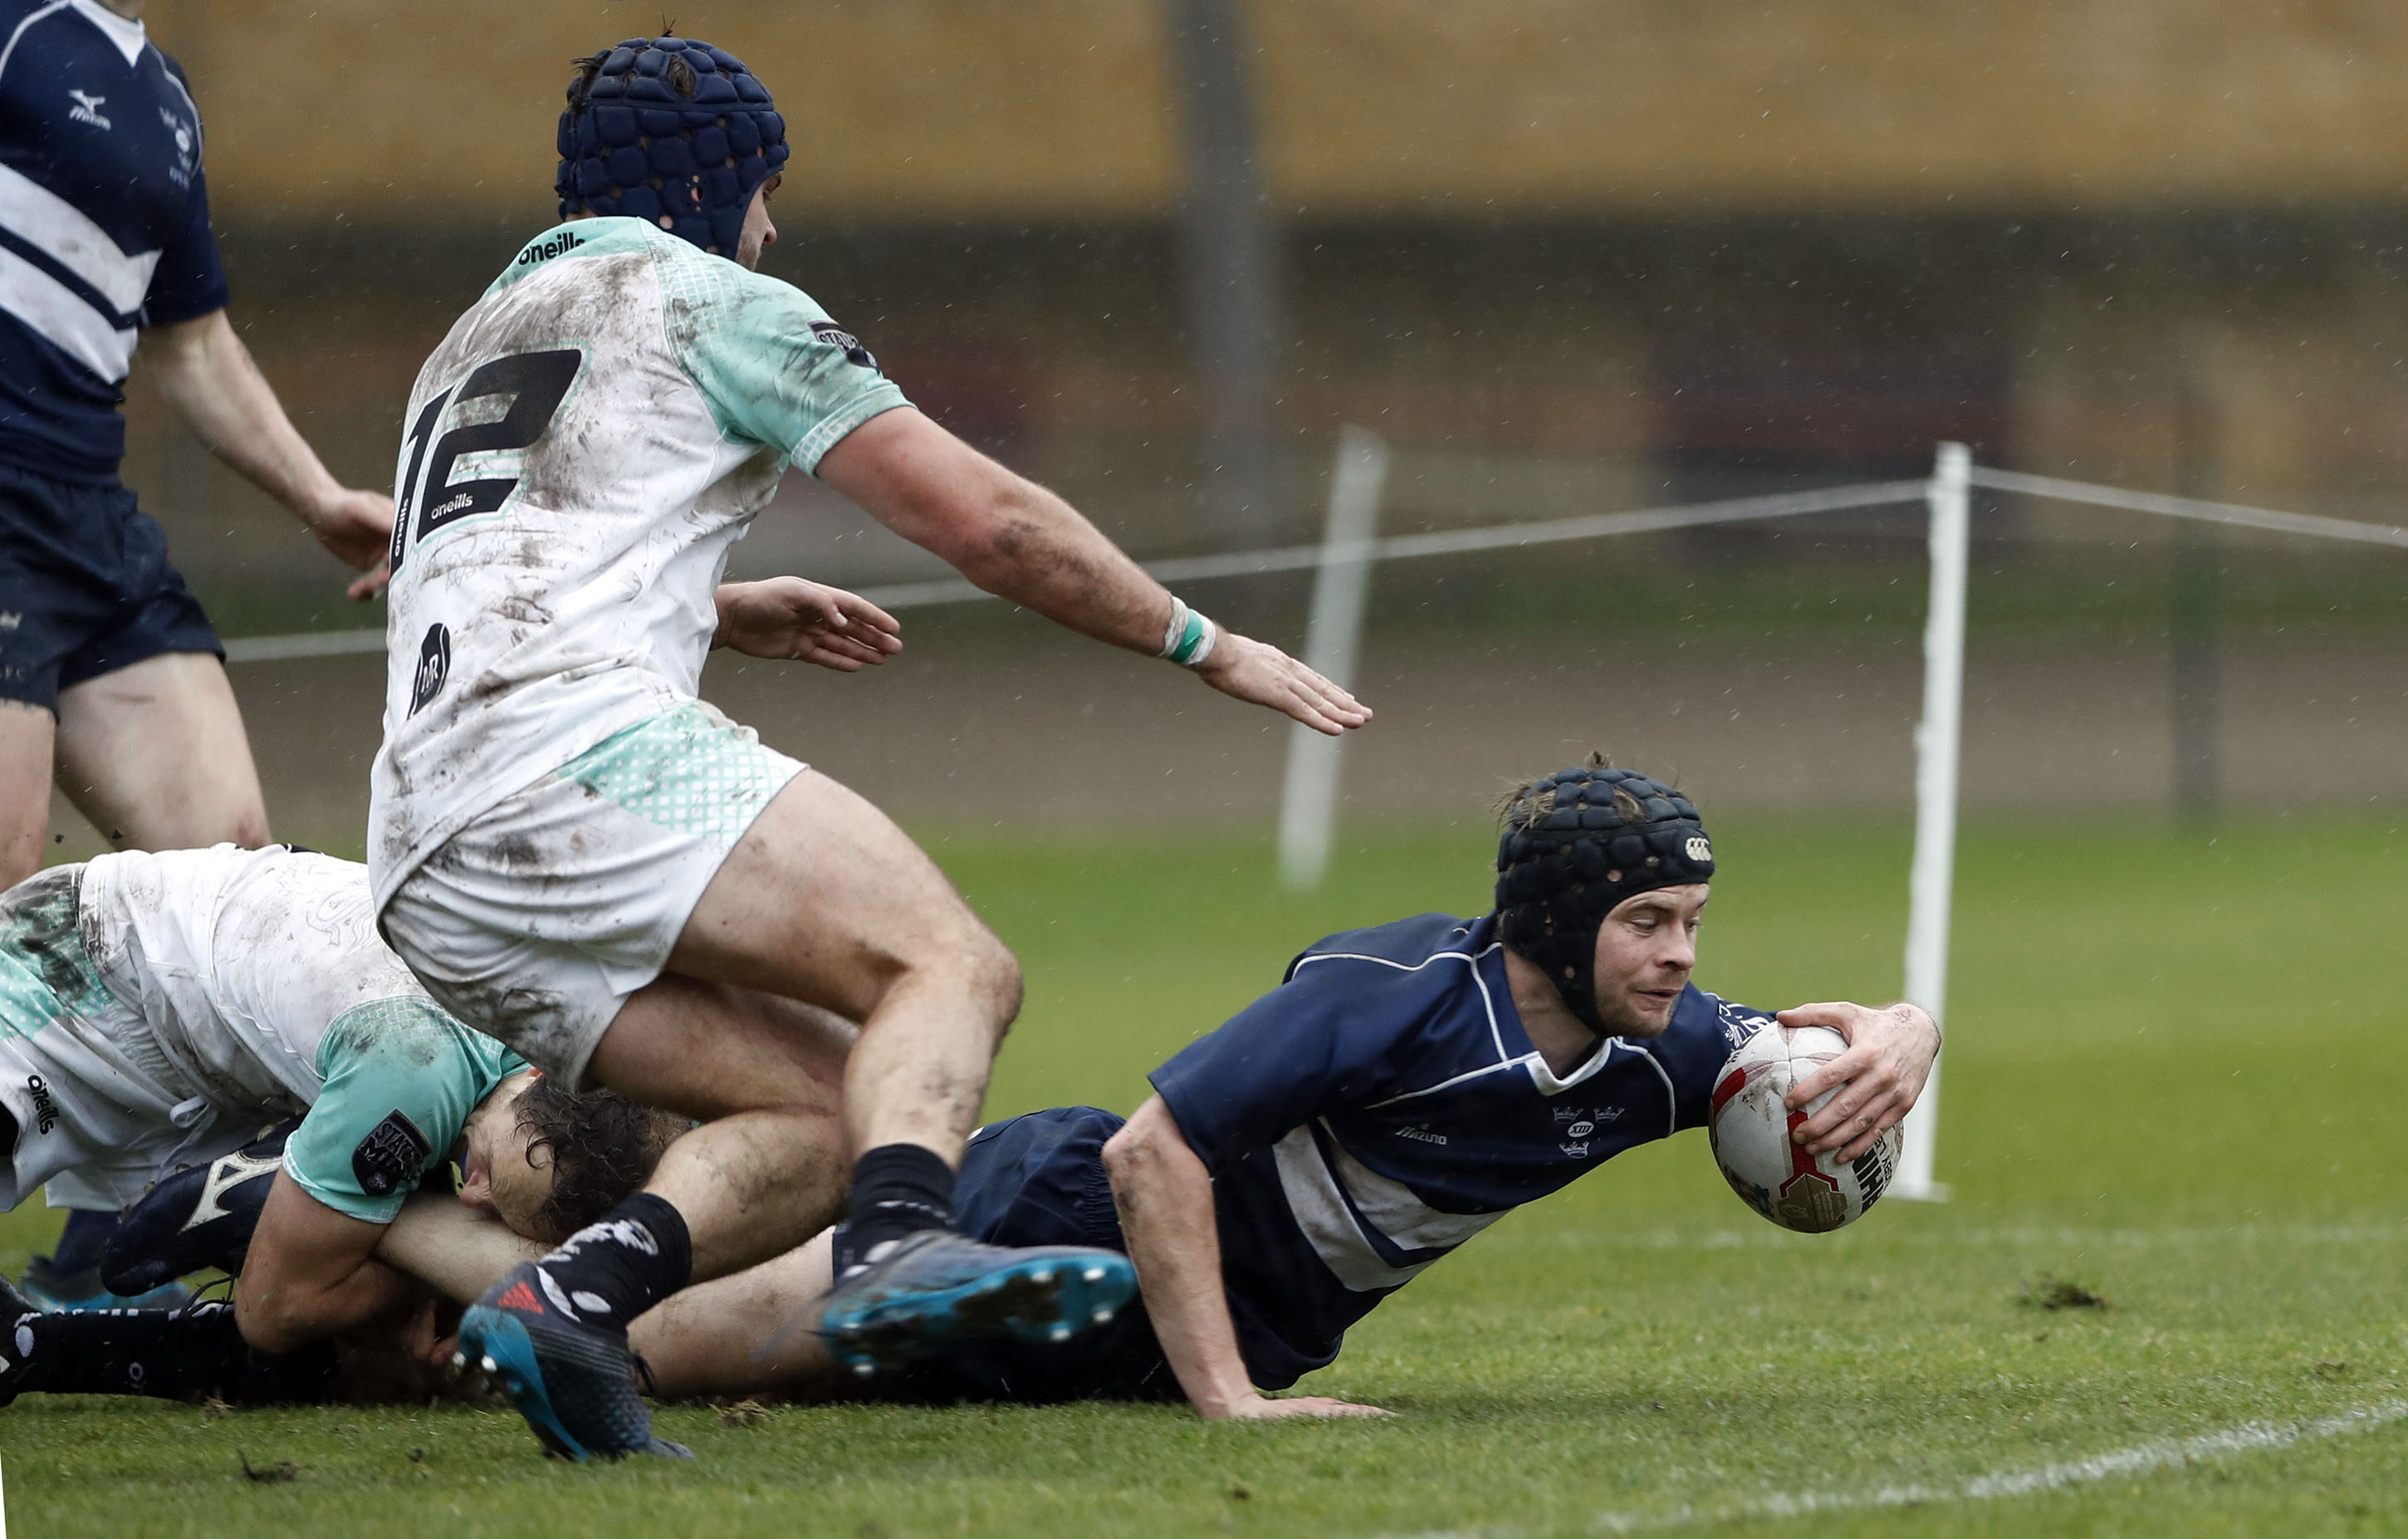 William Taverner touches down for Oxford during the RCMA Varsity Rugby League game between Cambridge University and Oxford University at the HAC Ground, Moorgate, London on Fri Mar 9, 2018